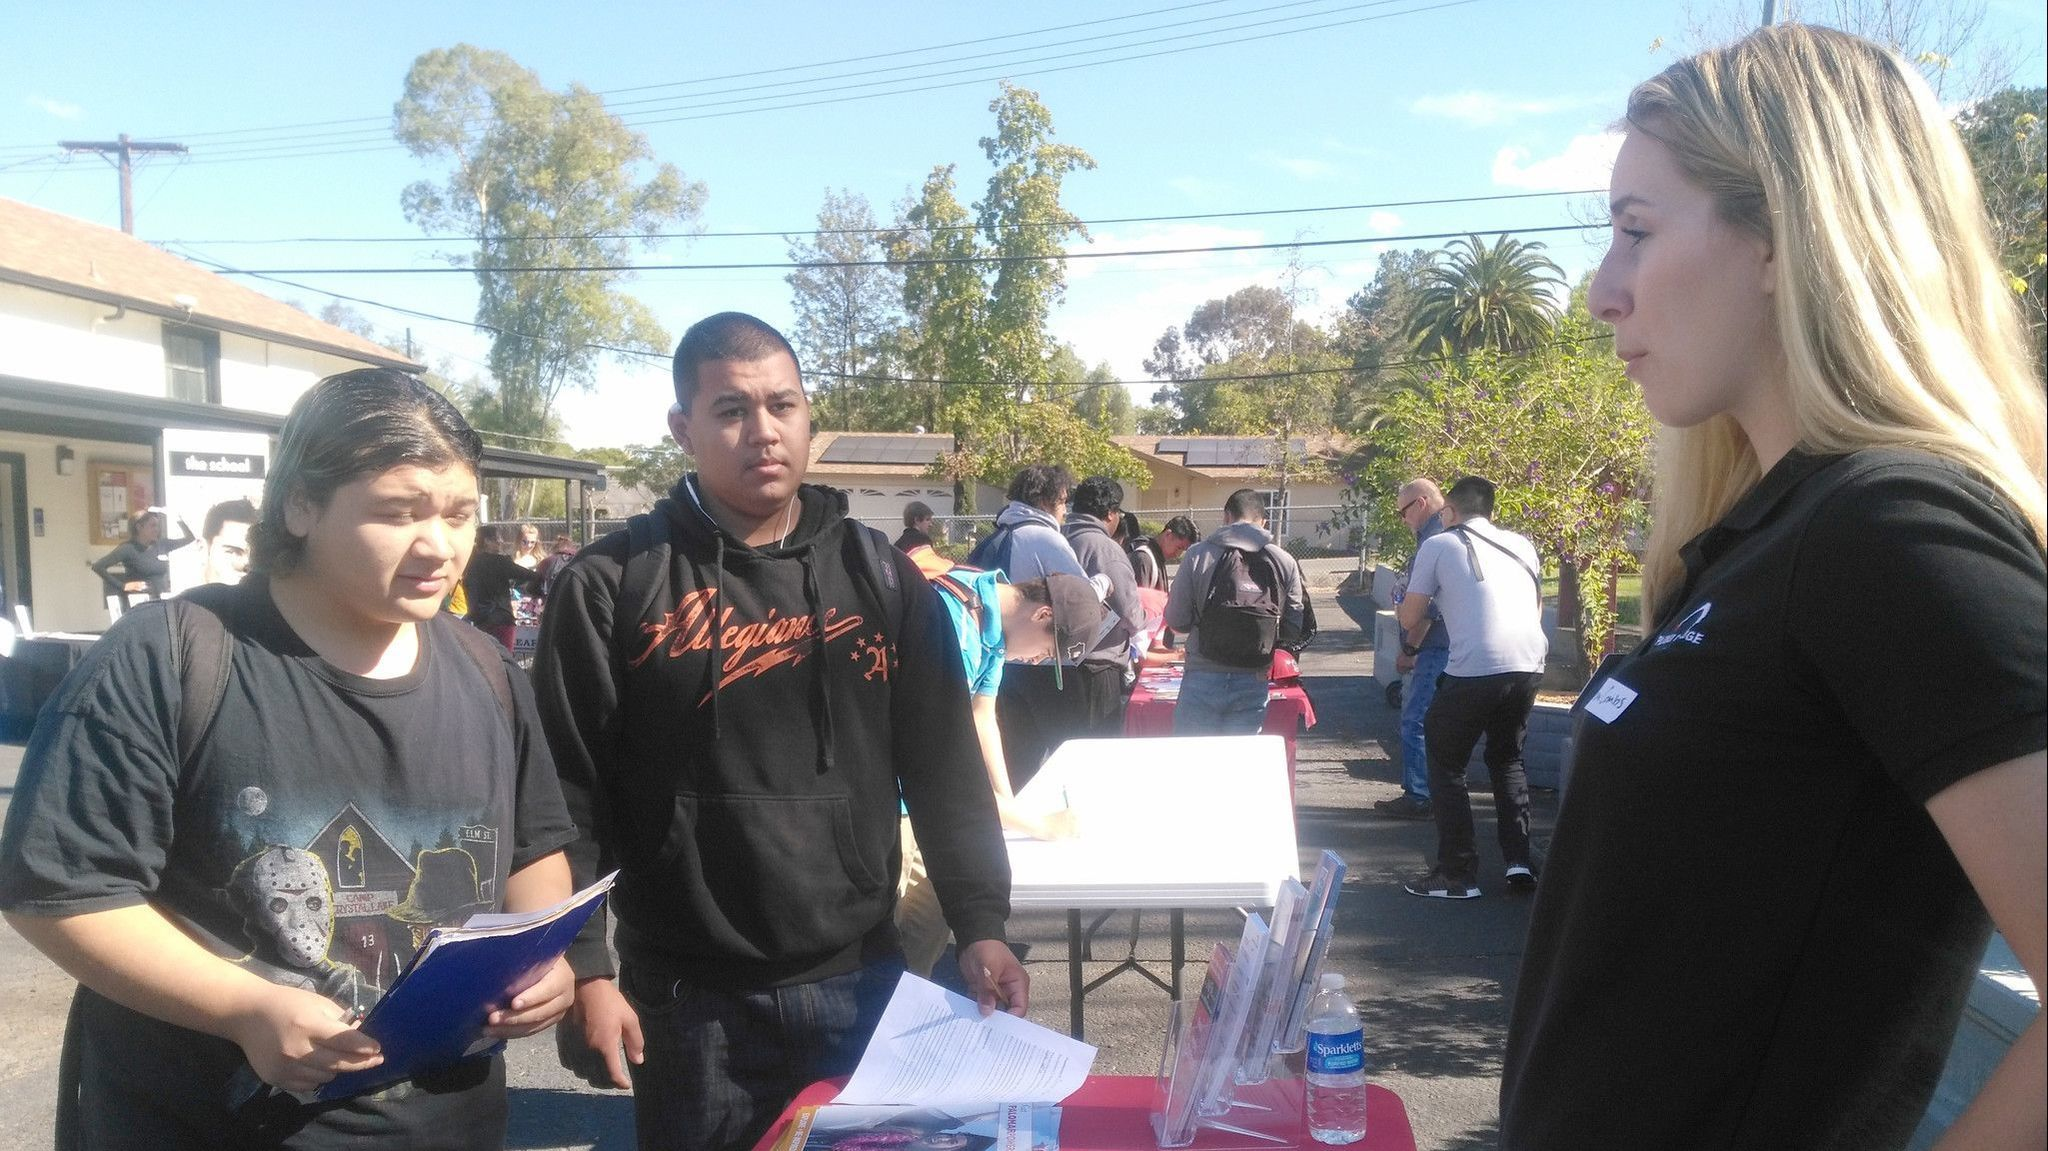 Montecito High students, from left, juniors Oscar Alvarado and Michael Flagg, explore community college options with Palomar College Ambassador Emma Combs.